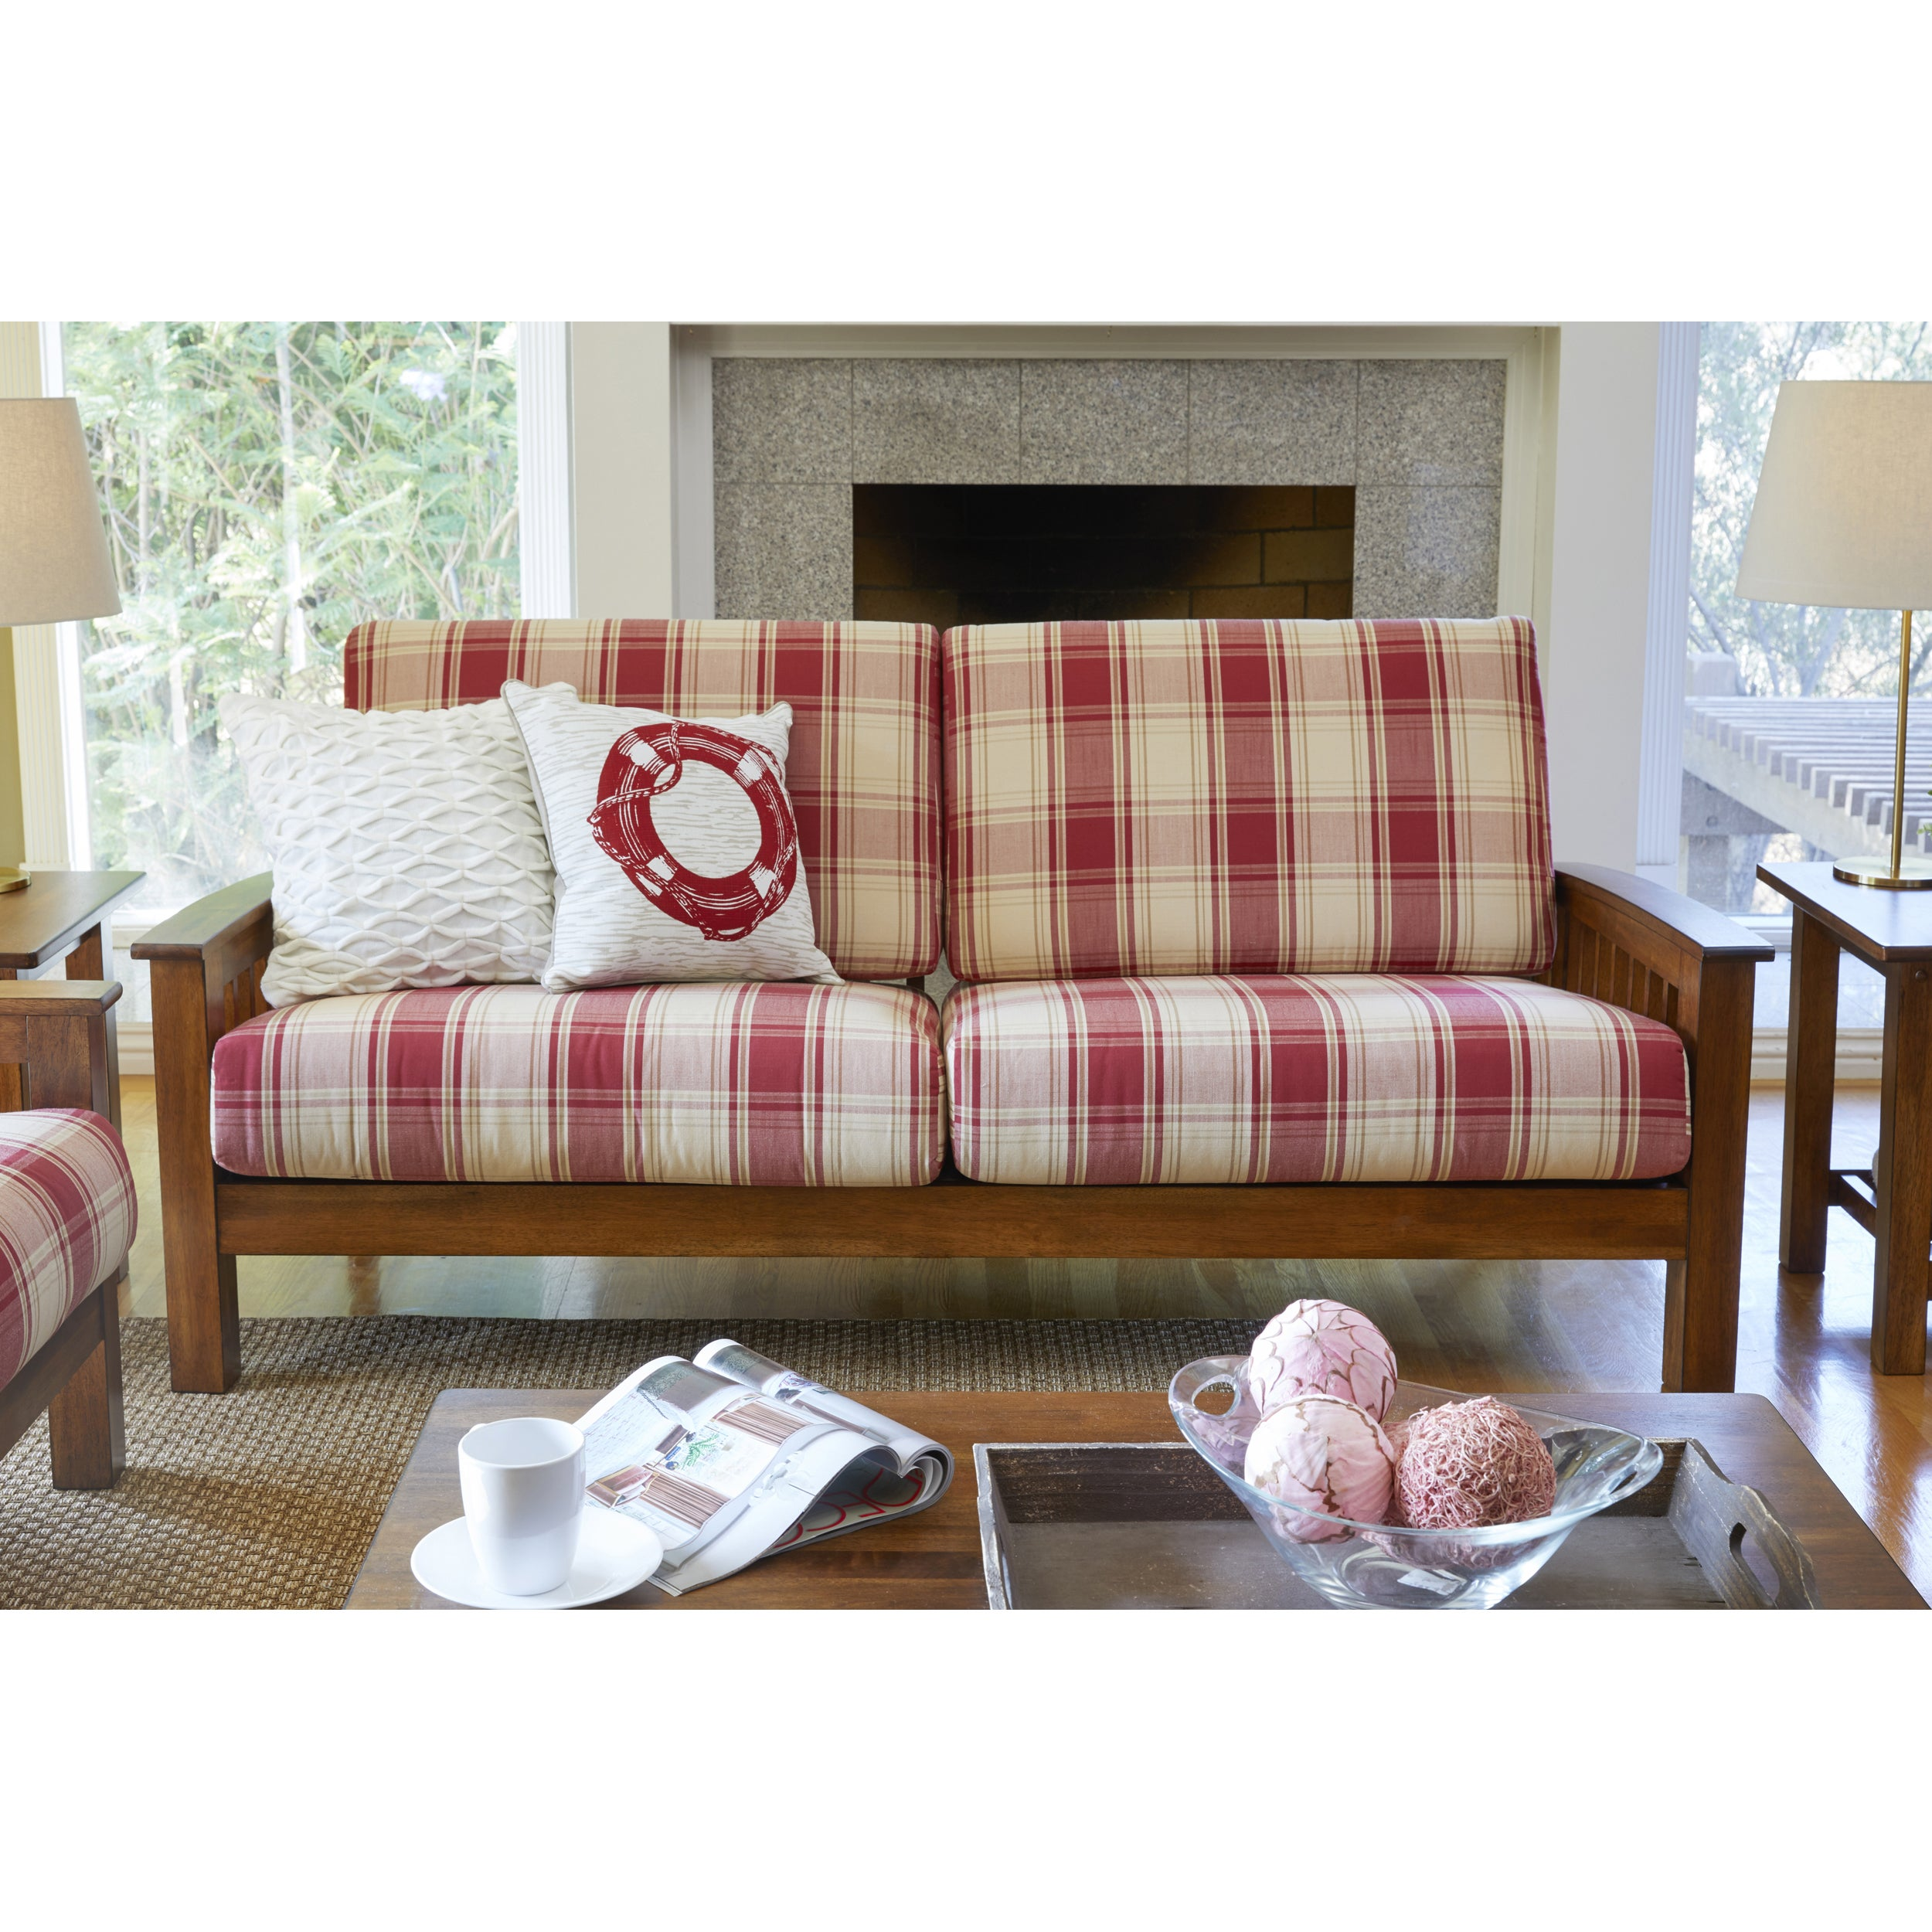 Shop Handy Living Omaha Red Plaid Mission Style Sofa with Exposed